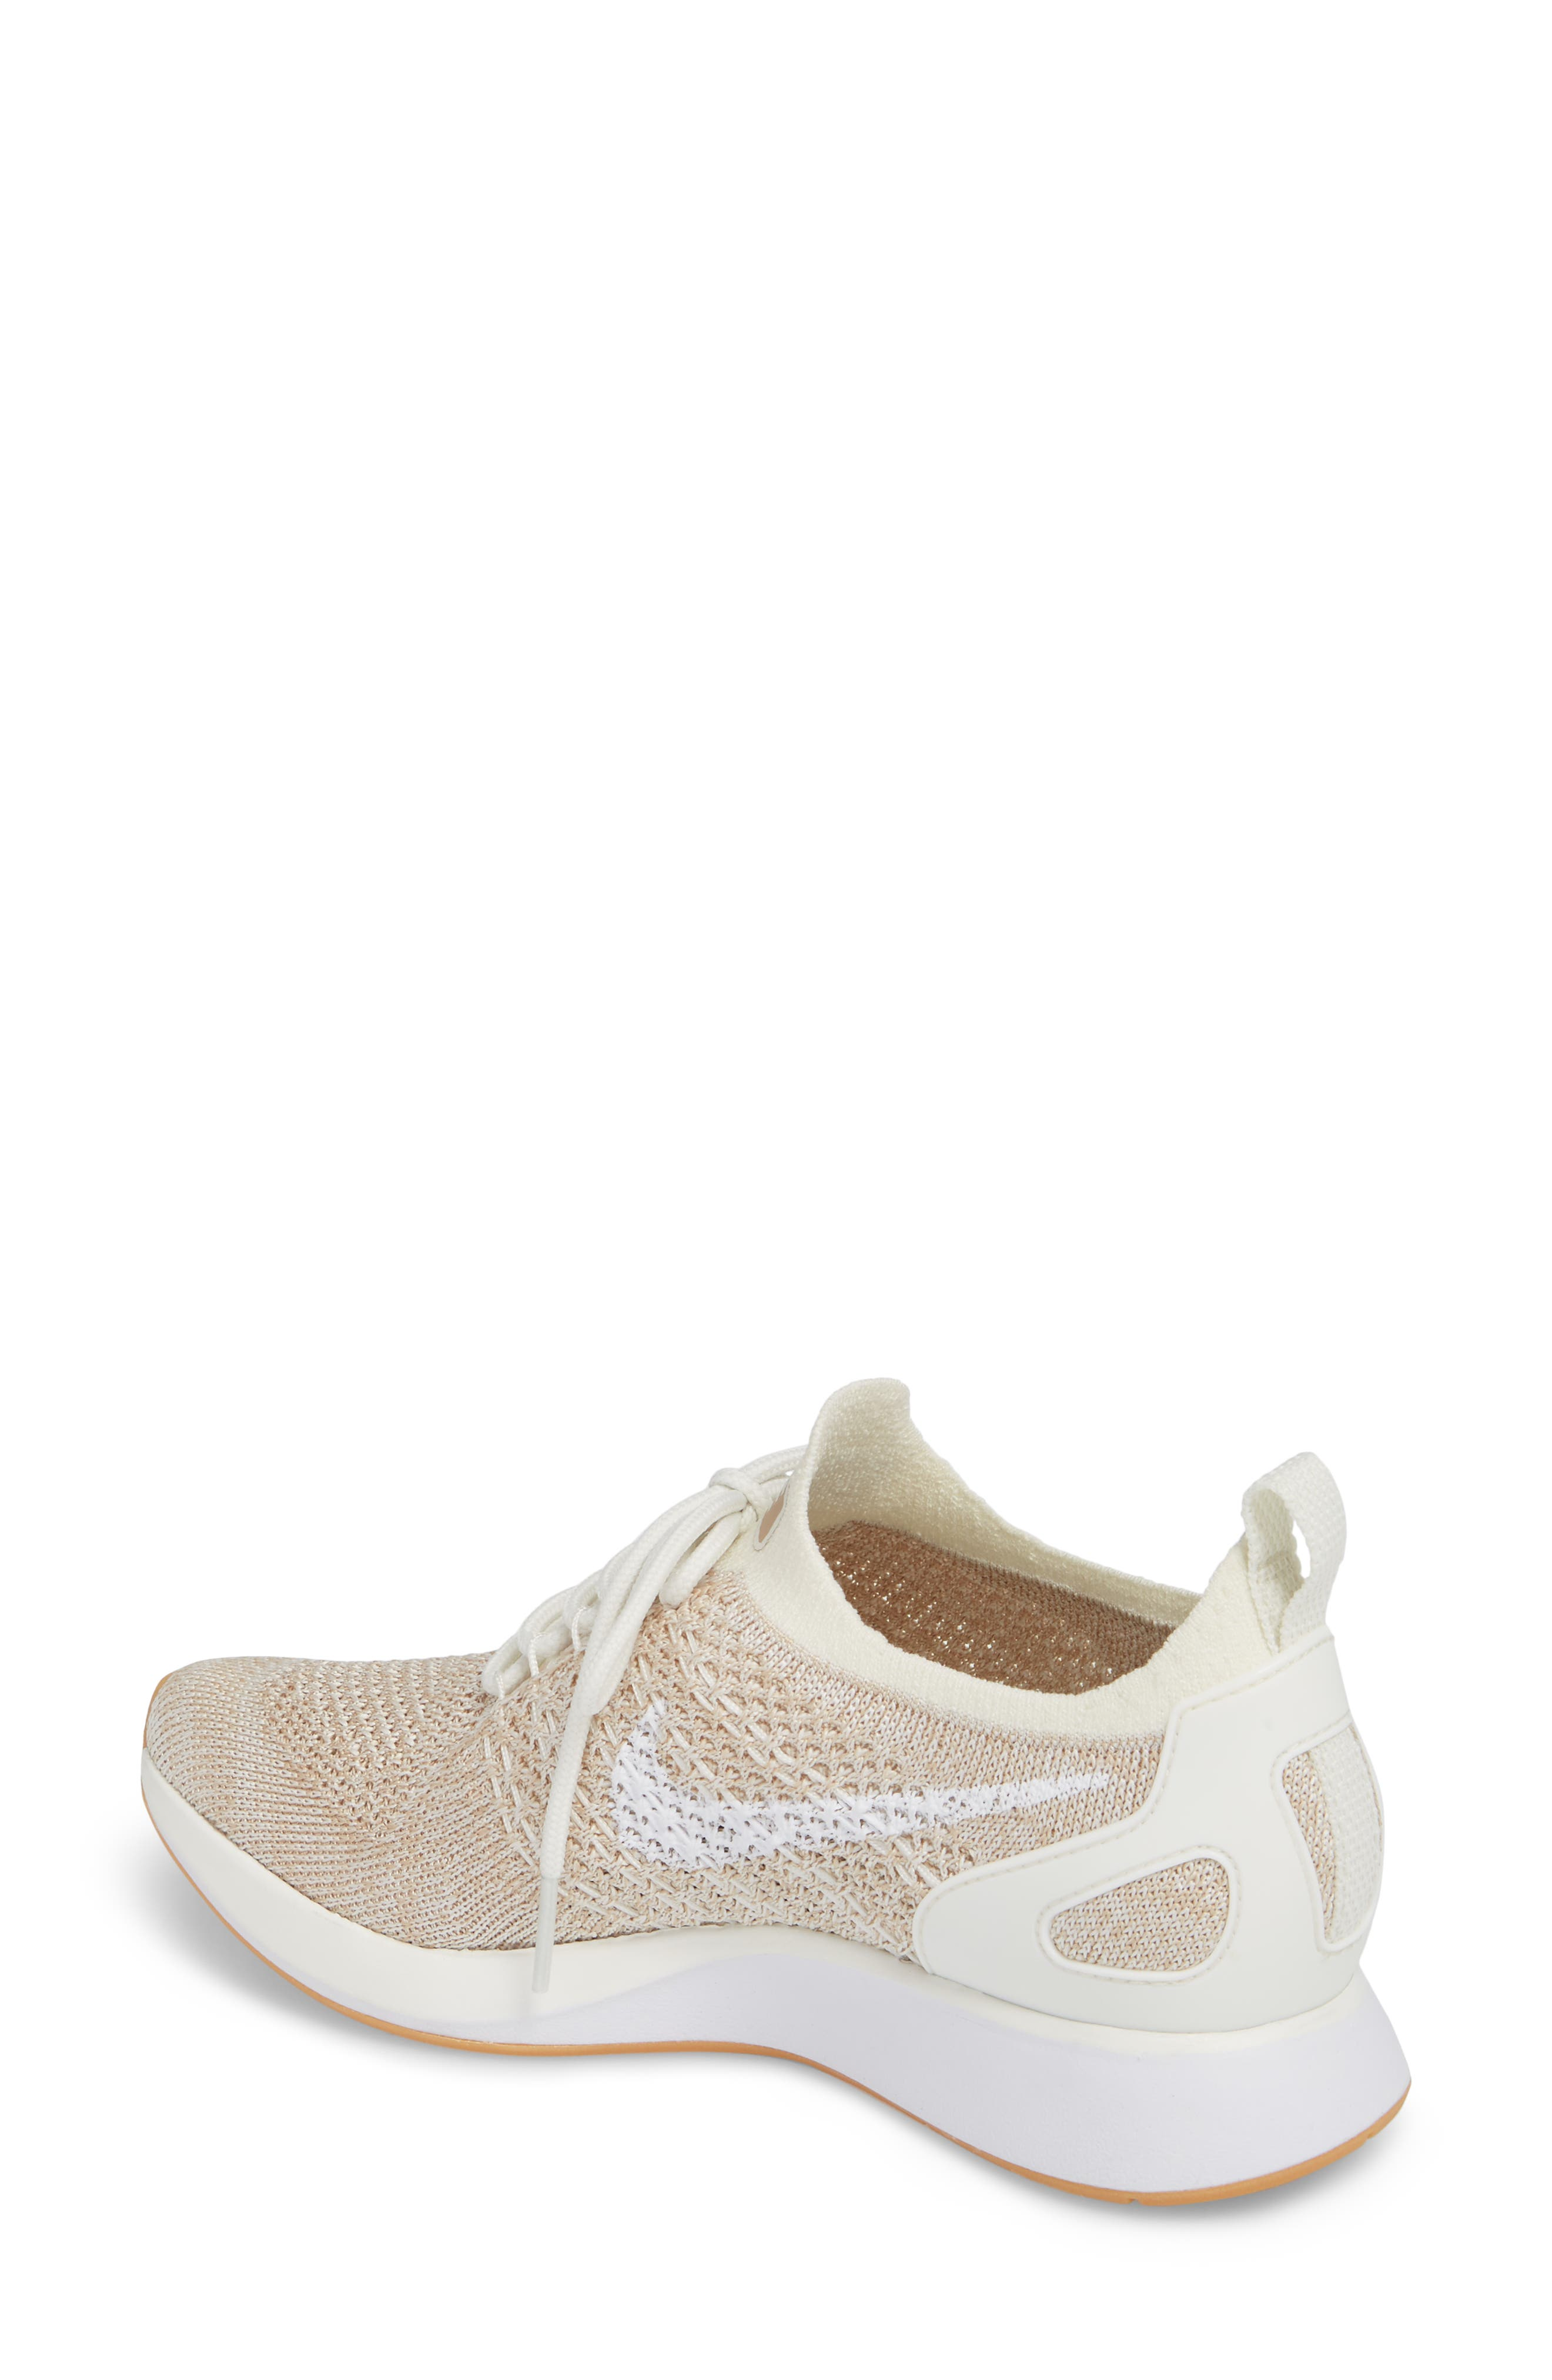 Air Zoom Mariah Flyknit Racer Sneaker,                             Alternate thumbnail 2, color,                             SAIL/ WHITE/ SAND